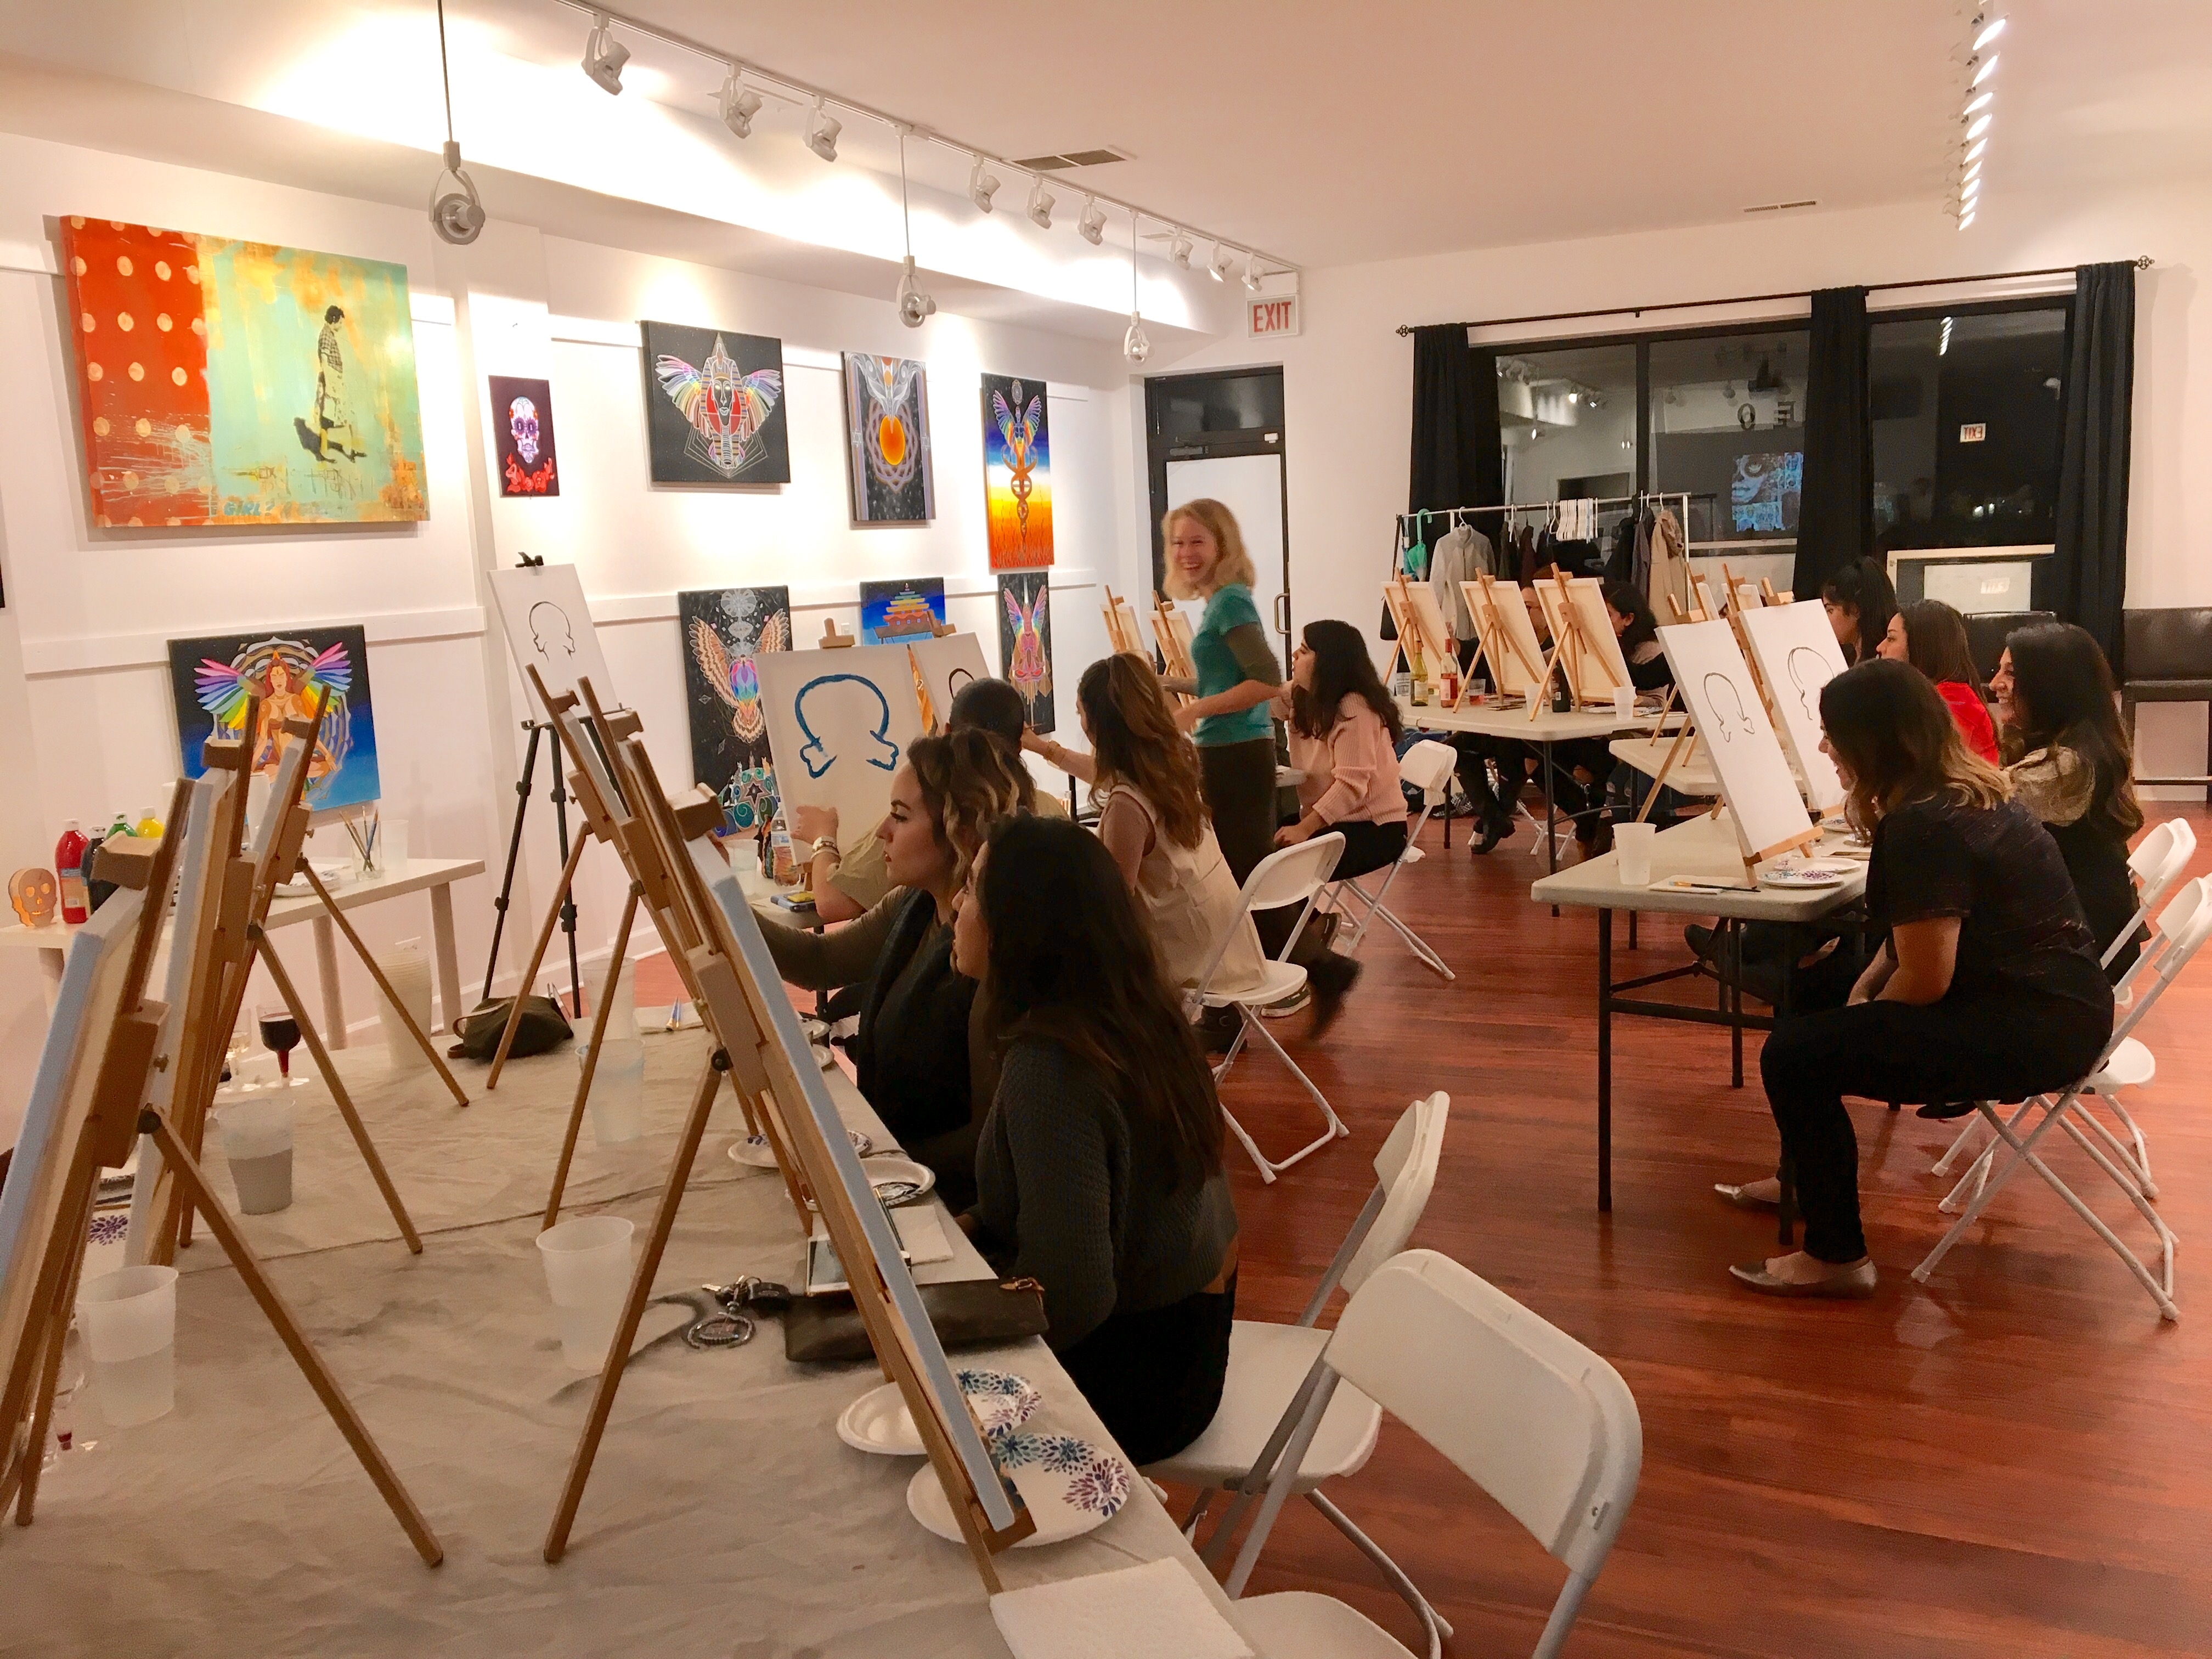 Bucktown Gallery event space in Chicago, Chicagoland Area